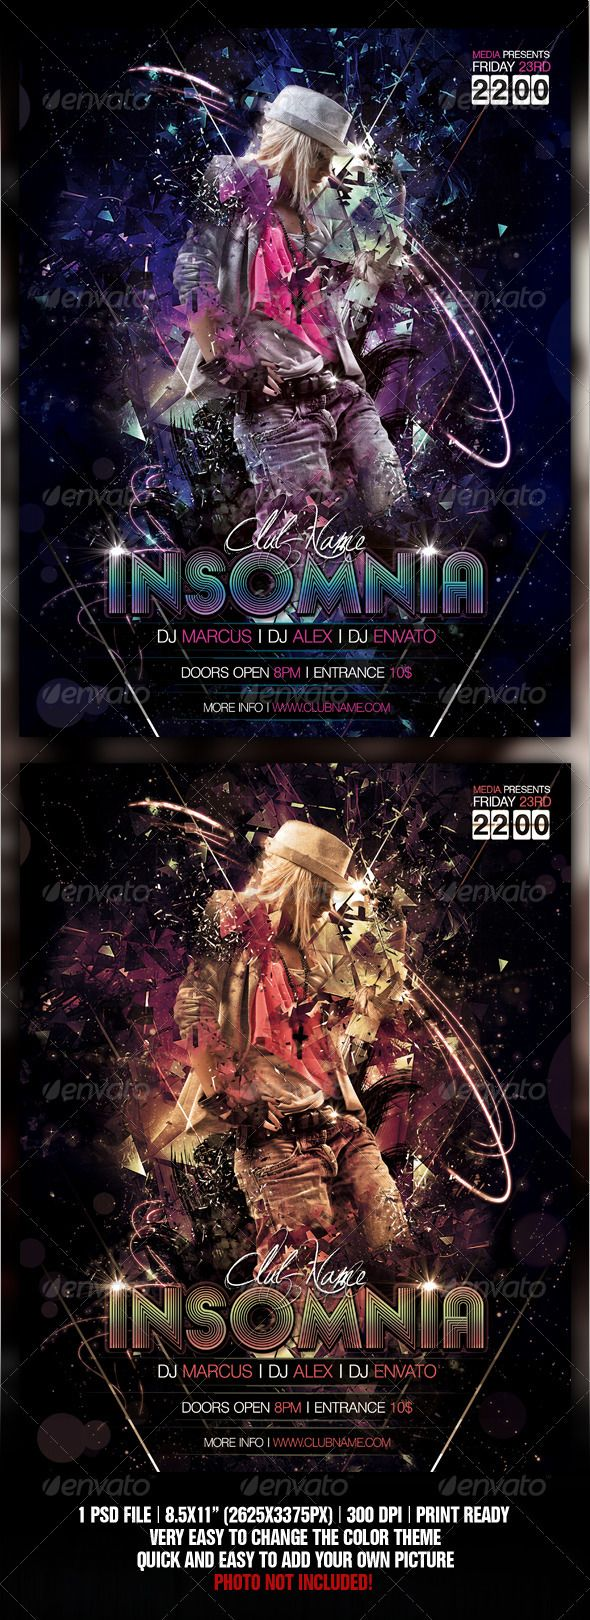 Insomnia Night Club Party / Concert Flyer / Poster | Party pops ...